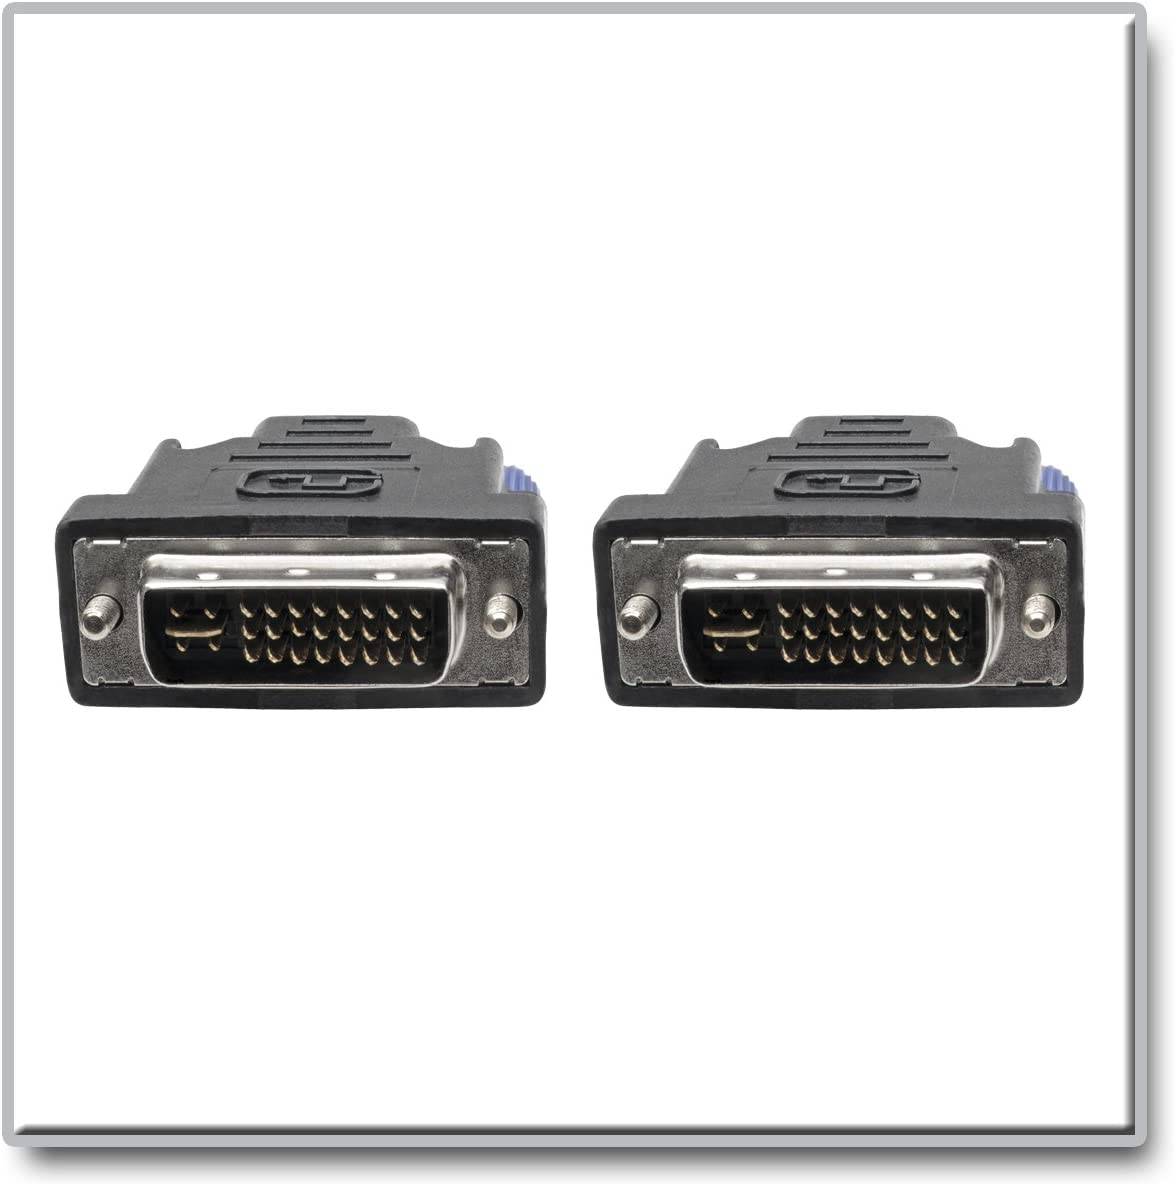 DVI-I M//M ,Black P560-006-DLI 6-ft. 2560 x 1600 Tripp Lite DVI-I Dual Link Digital and Analog Monitor Cable